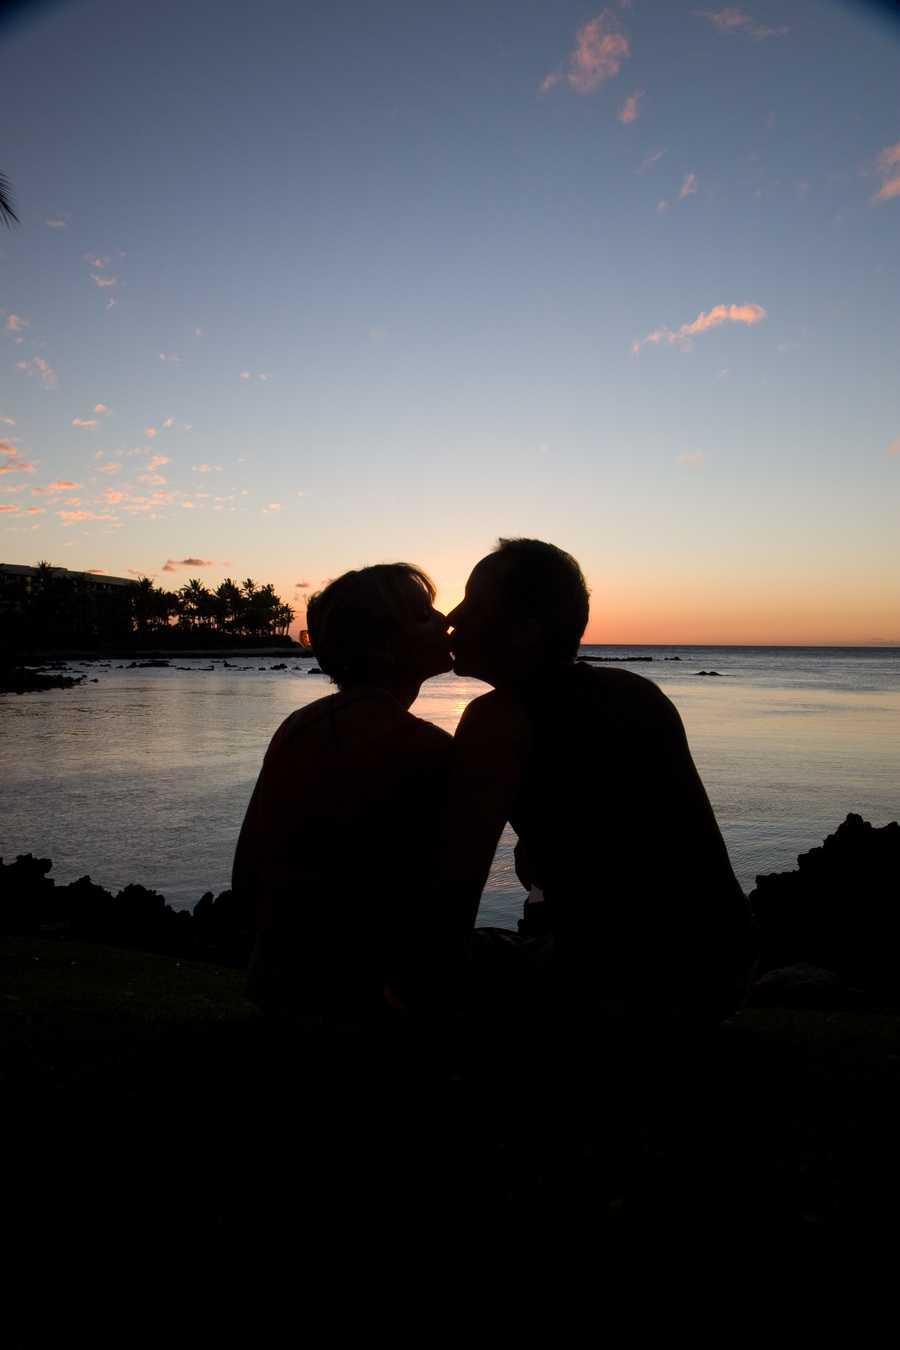 Lanai City is on the list of 10 unexpectedly romantic cities.